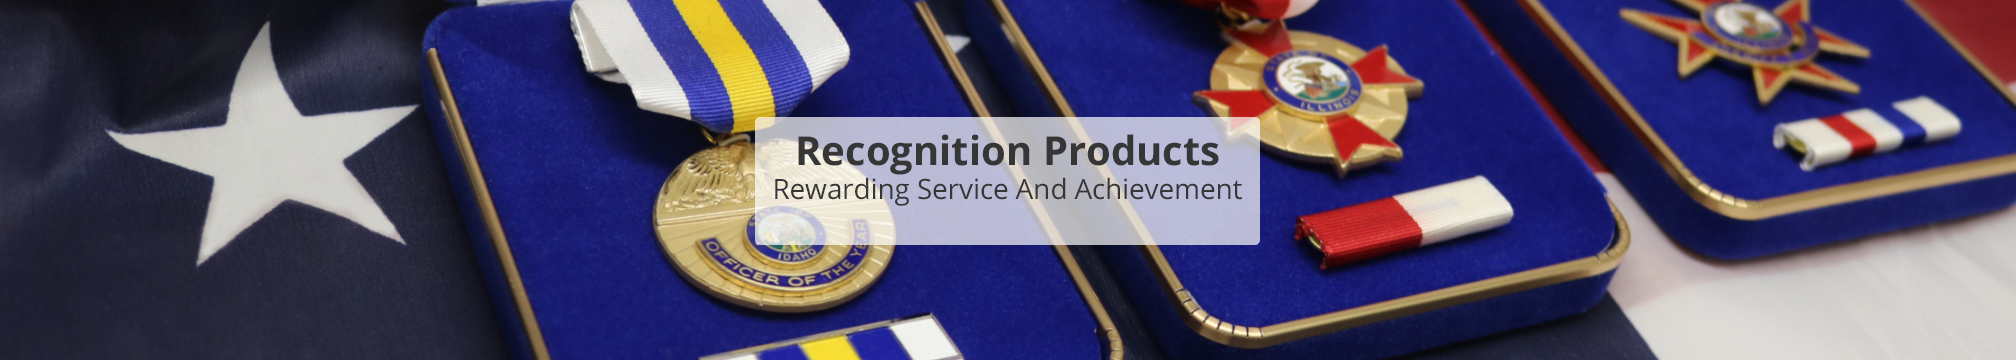 Recognition Products